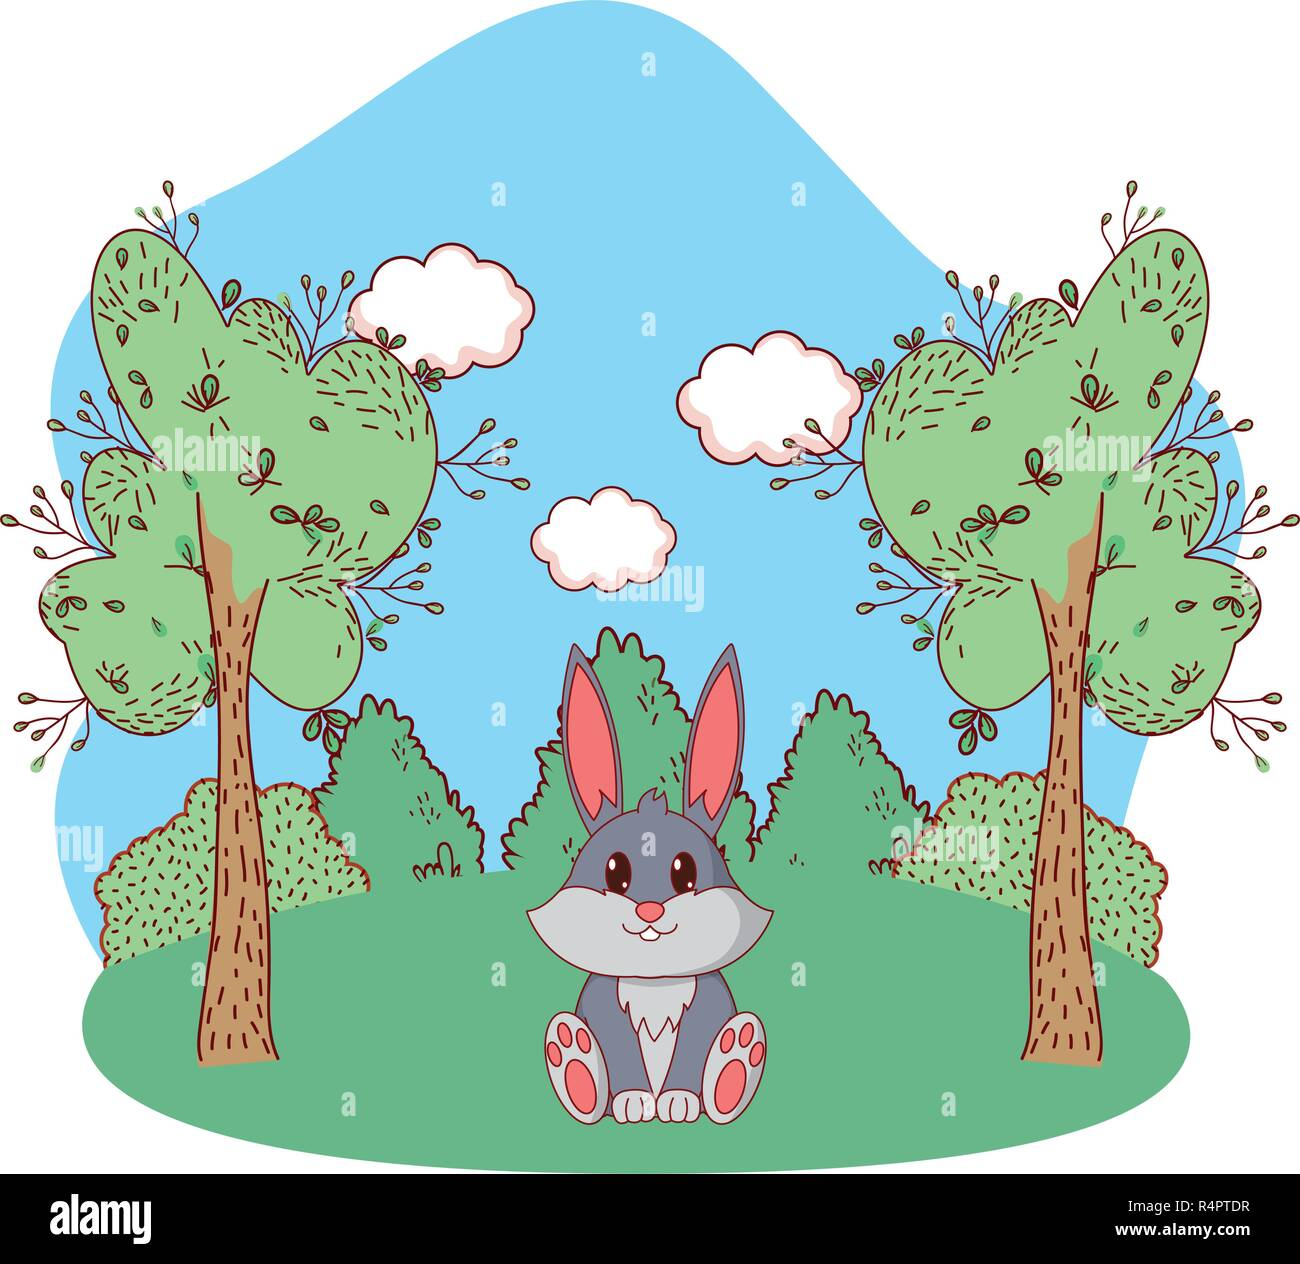 Cute Animal Rabbit Between Trees Cartoon Vector Illustration Graphic Design Stock Vector Image Art Alamy Almost files can be used for commercial. https www alamy com cute animal rabbit between trees cartoon vector illustration graphic design image226695555 html